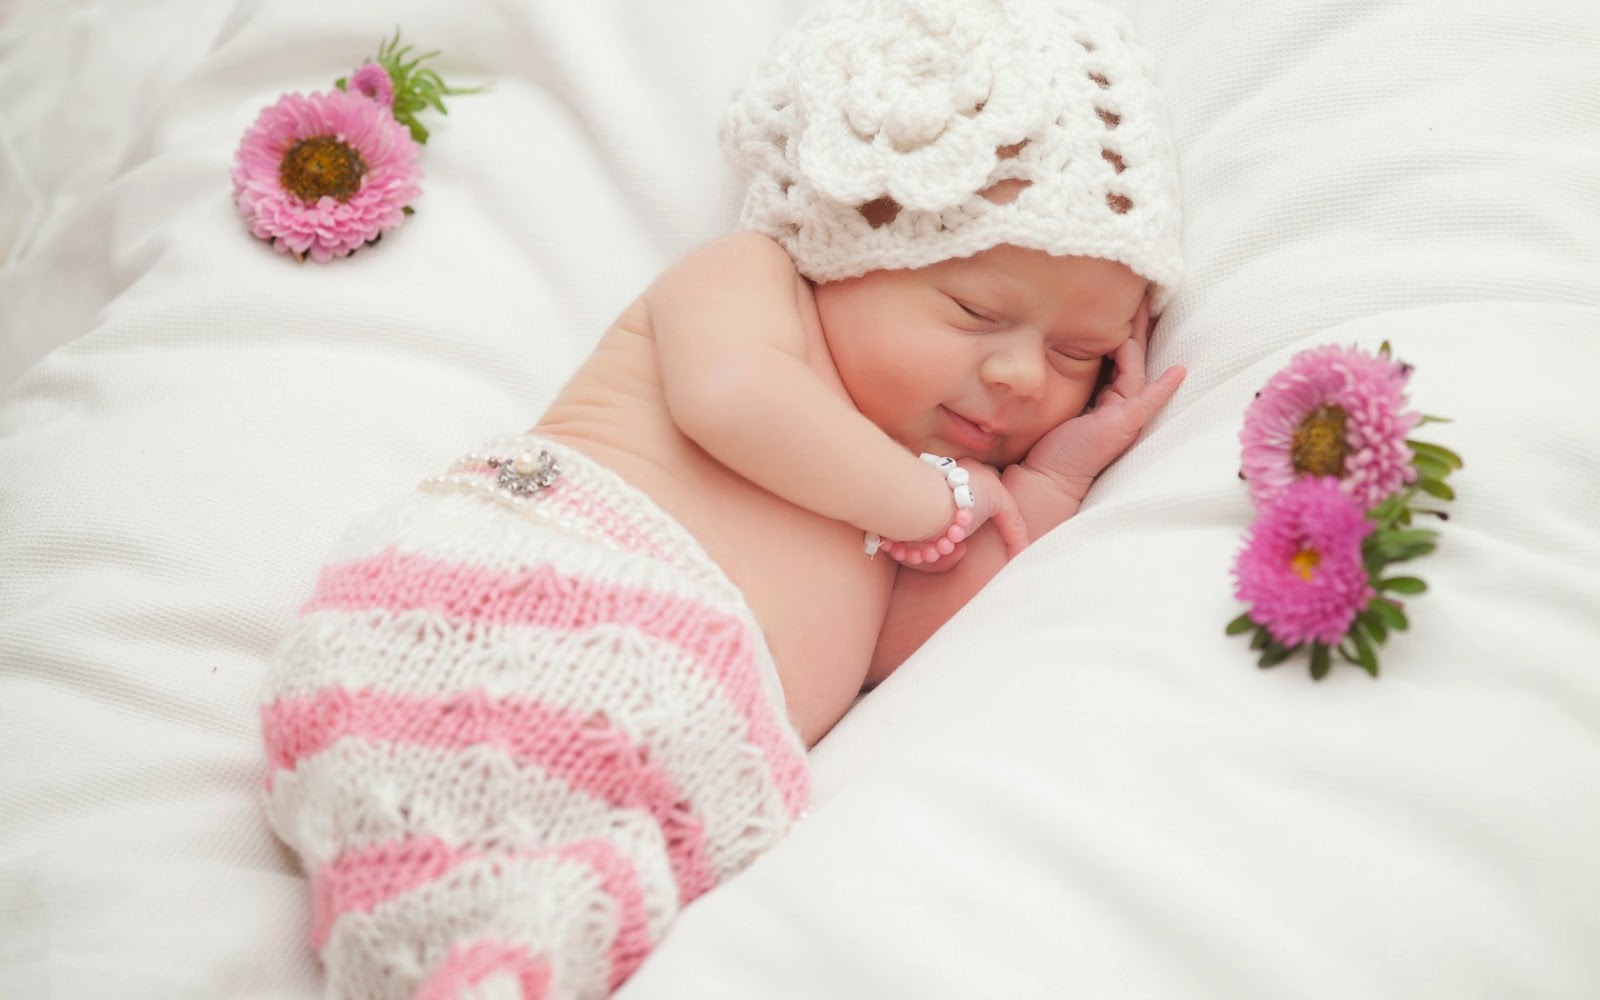 Free Download Cute Baby Girl Sleeping With Smile Hd Photos Images Wallpapers 1600x1000 For Your Desktop Mobile Tablet Explore 48 Baby Images Wallpapers Wallpaper For Baby Baby Boy Images